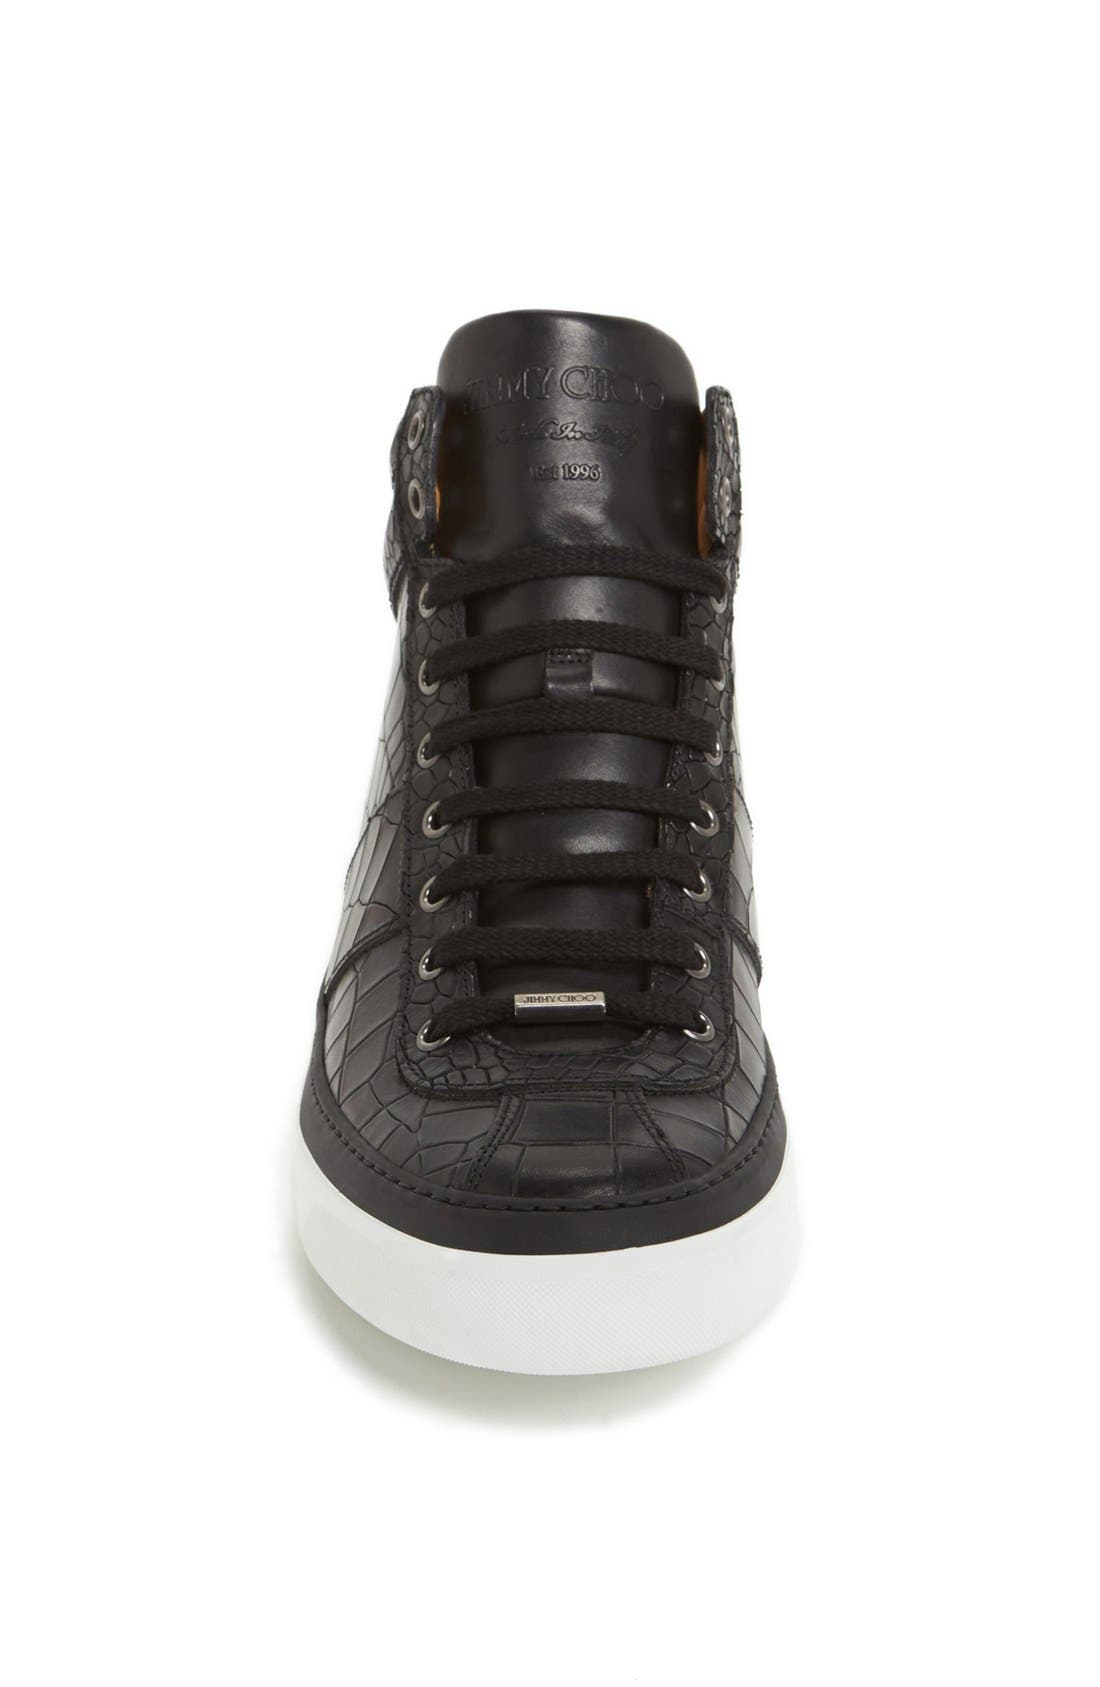 Belgravia High Top Sneaker,                             Alternate thumbnail 4, color,